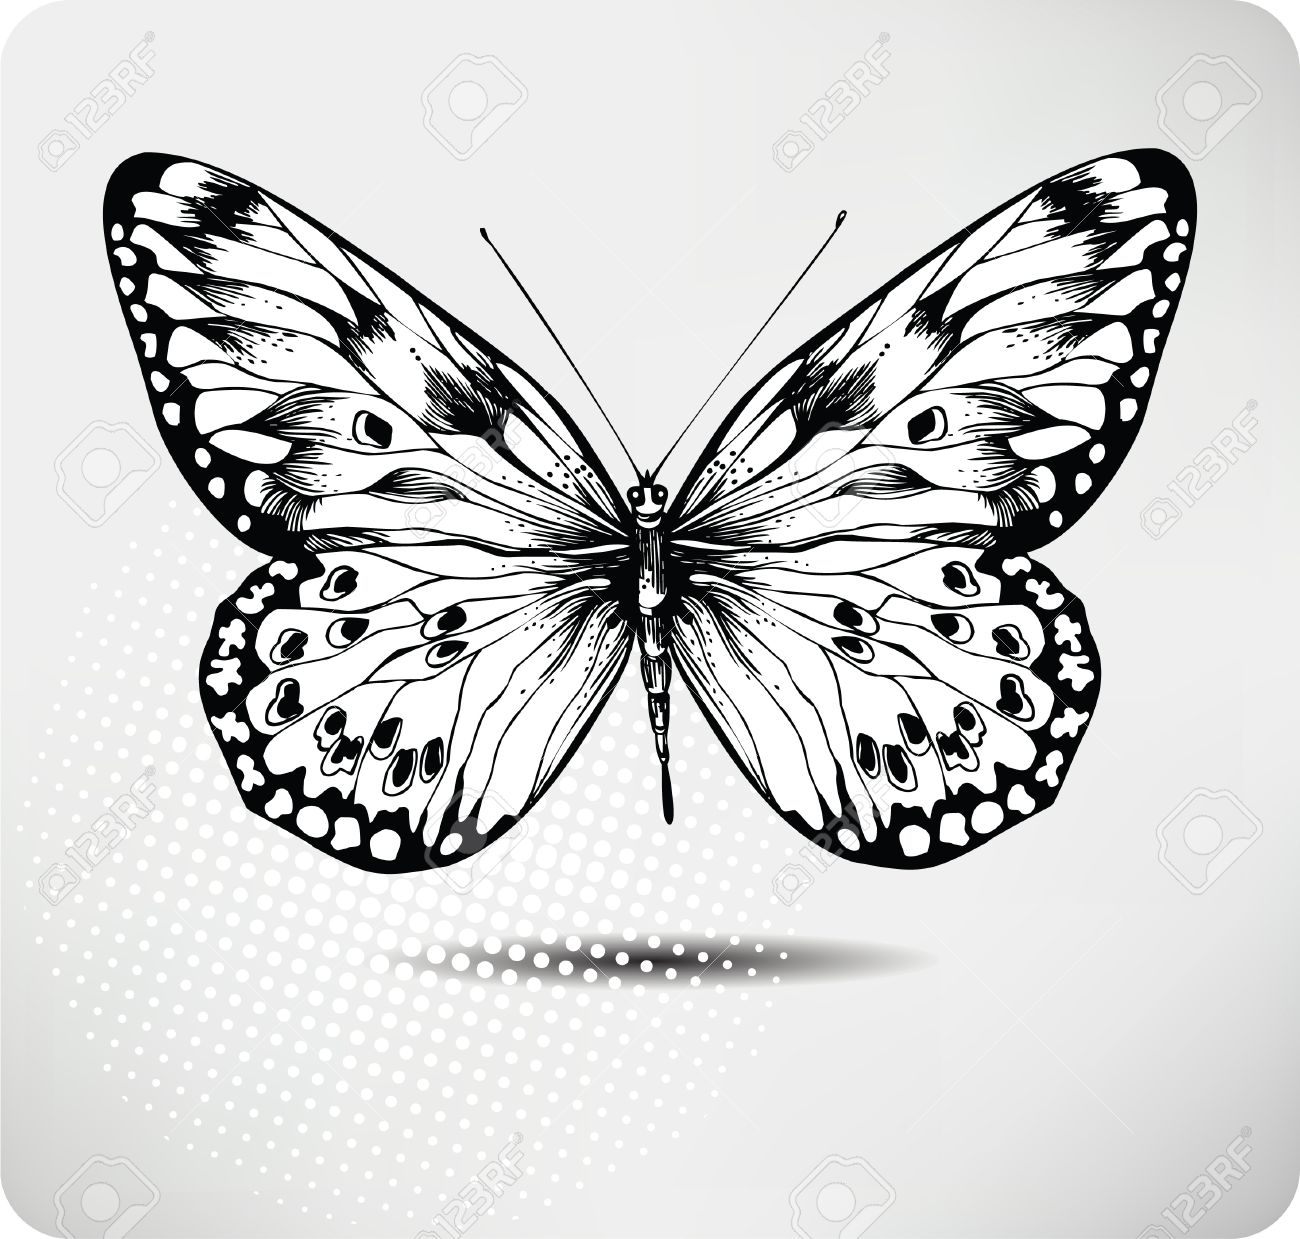 Butterfly hand drawing.Vector. Stock Vector - 11651220